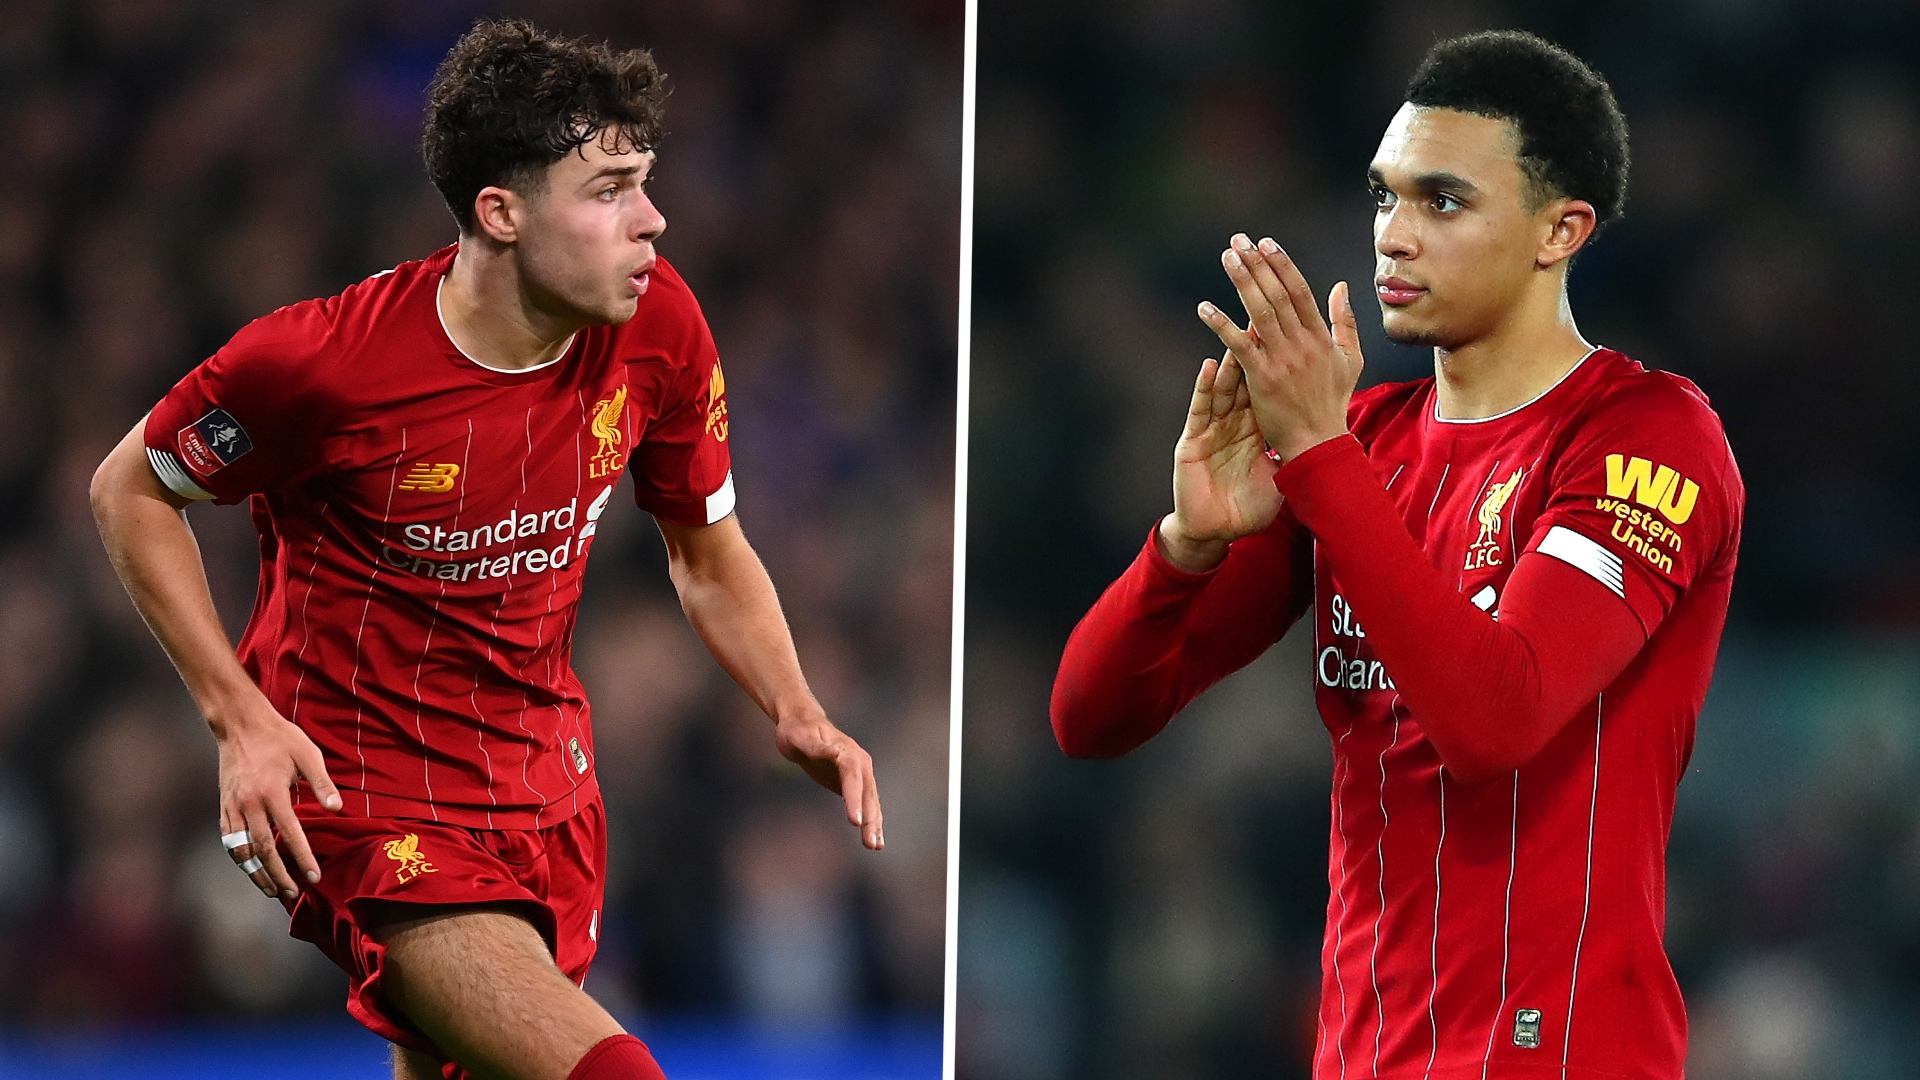 Alexander-Arnold backs Williams to become 'world class' after lasting just 45 minutes on full Liverpool debut